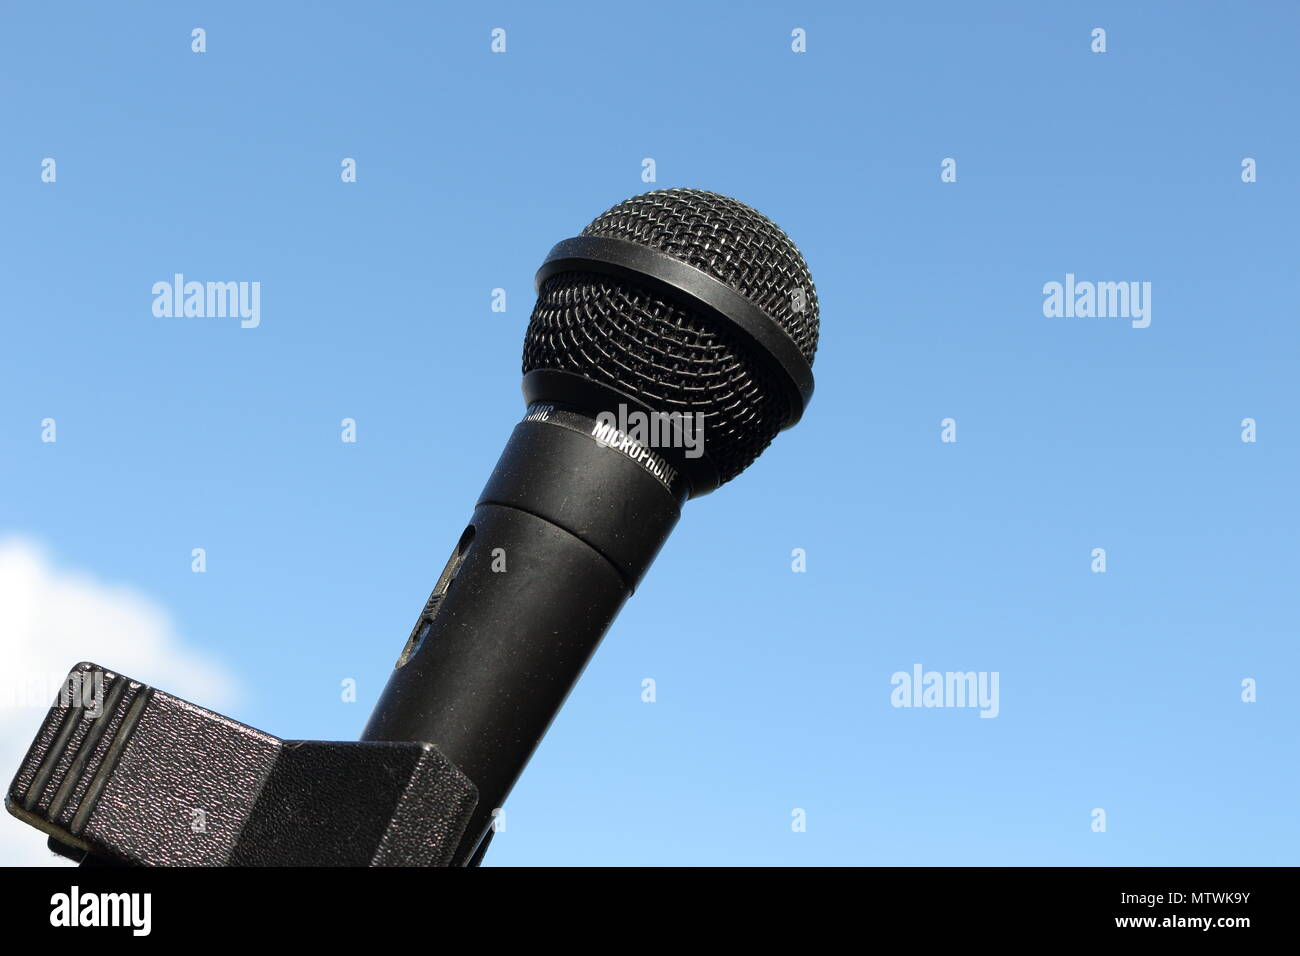 Close-up of black, shiny microphone with clear blue sky background on a sunny summer's day - Stock Image